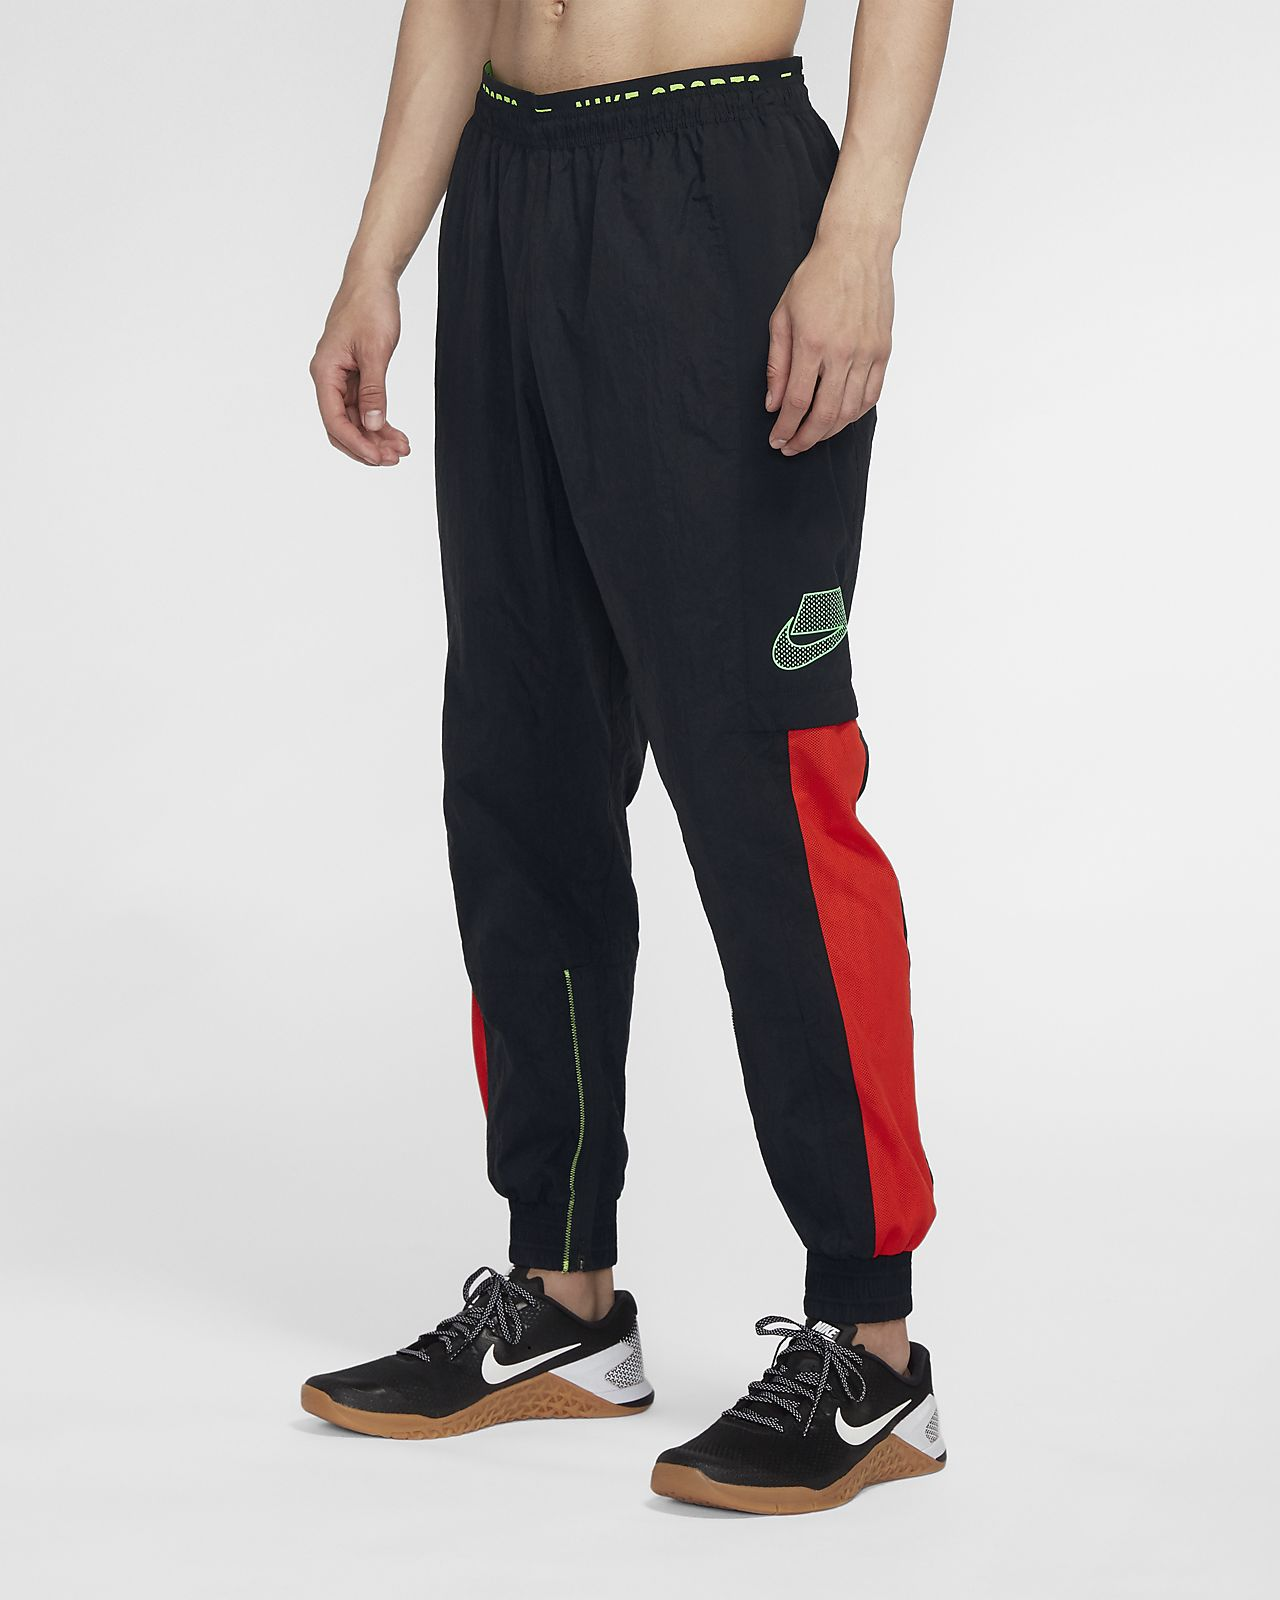 Nike Dri-FIT Flex Men's Training Trousers